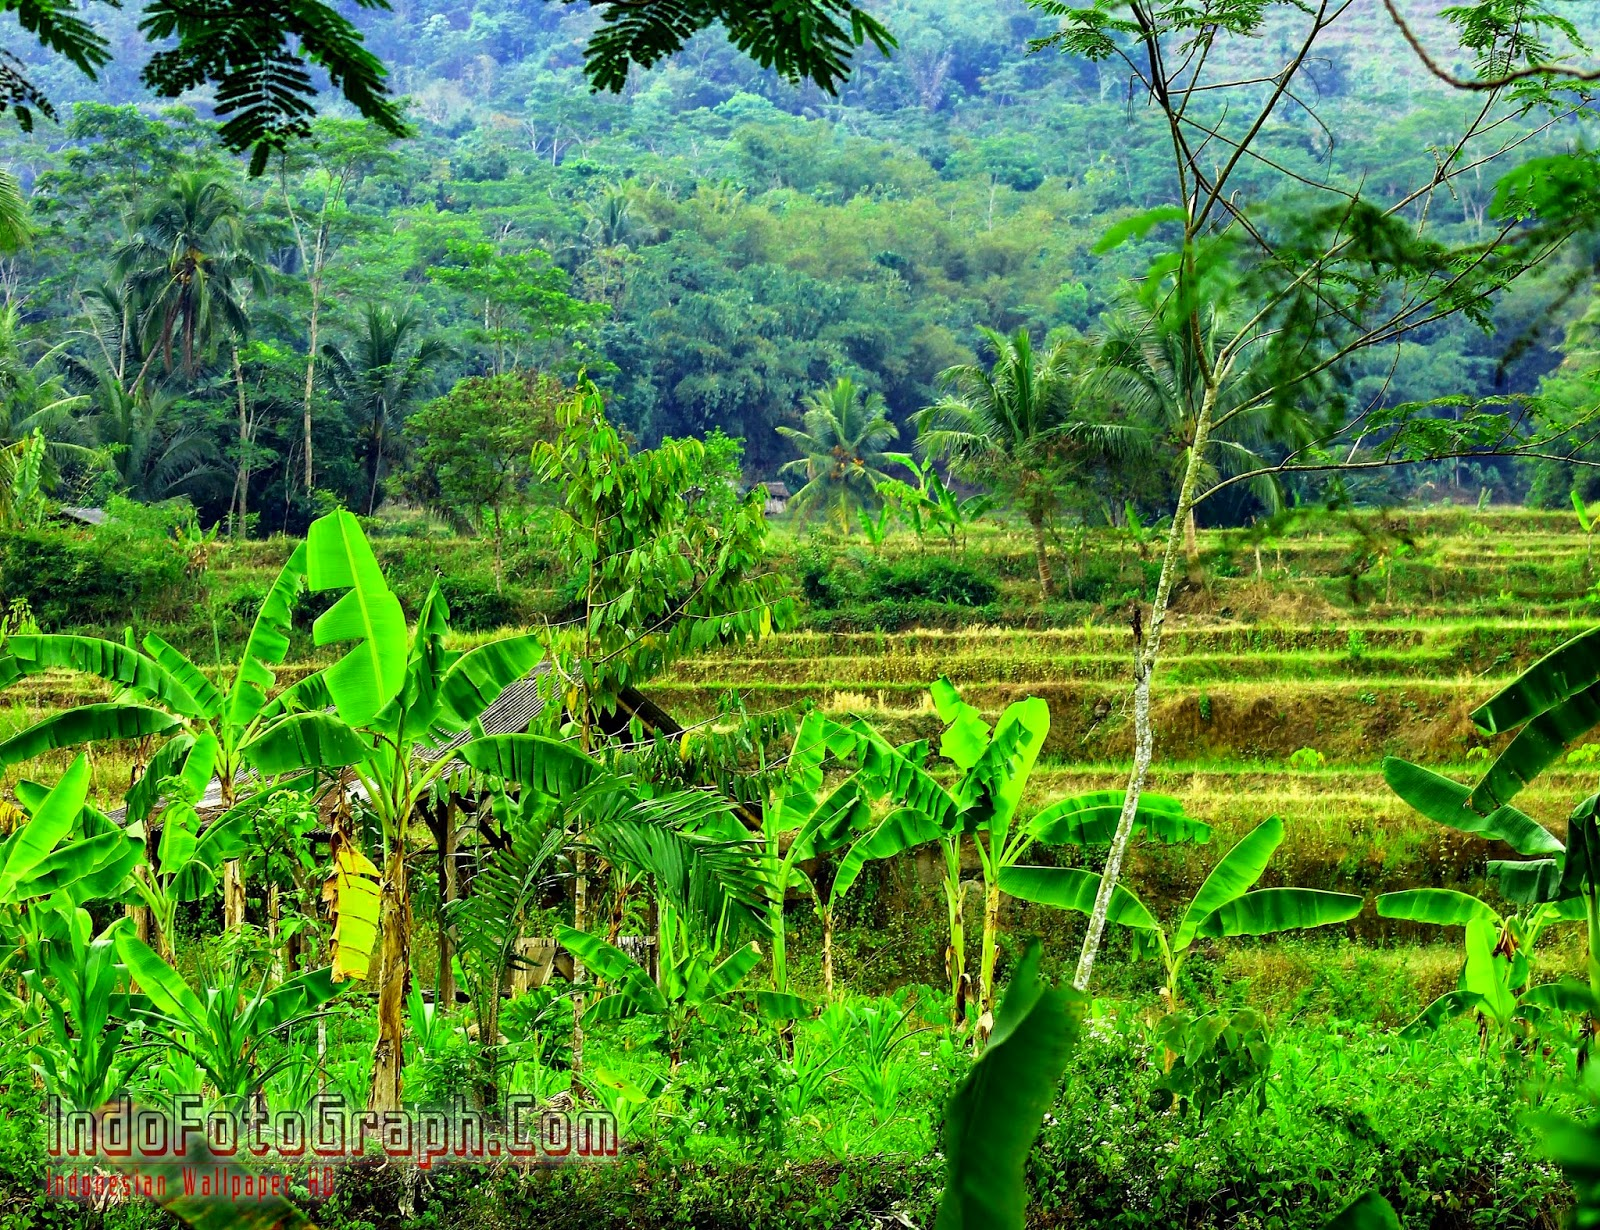 Download Wallpaper Alam Pohon Pisang